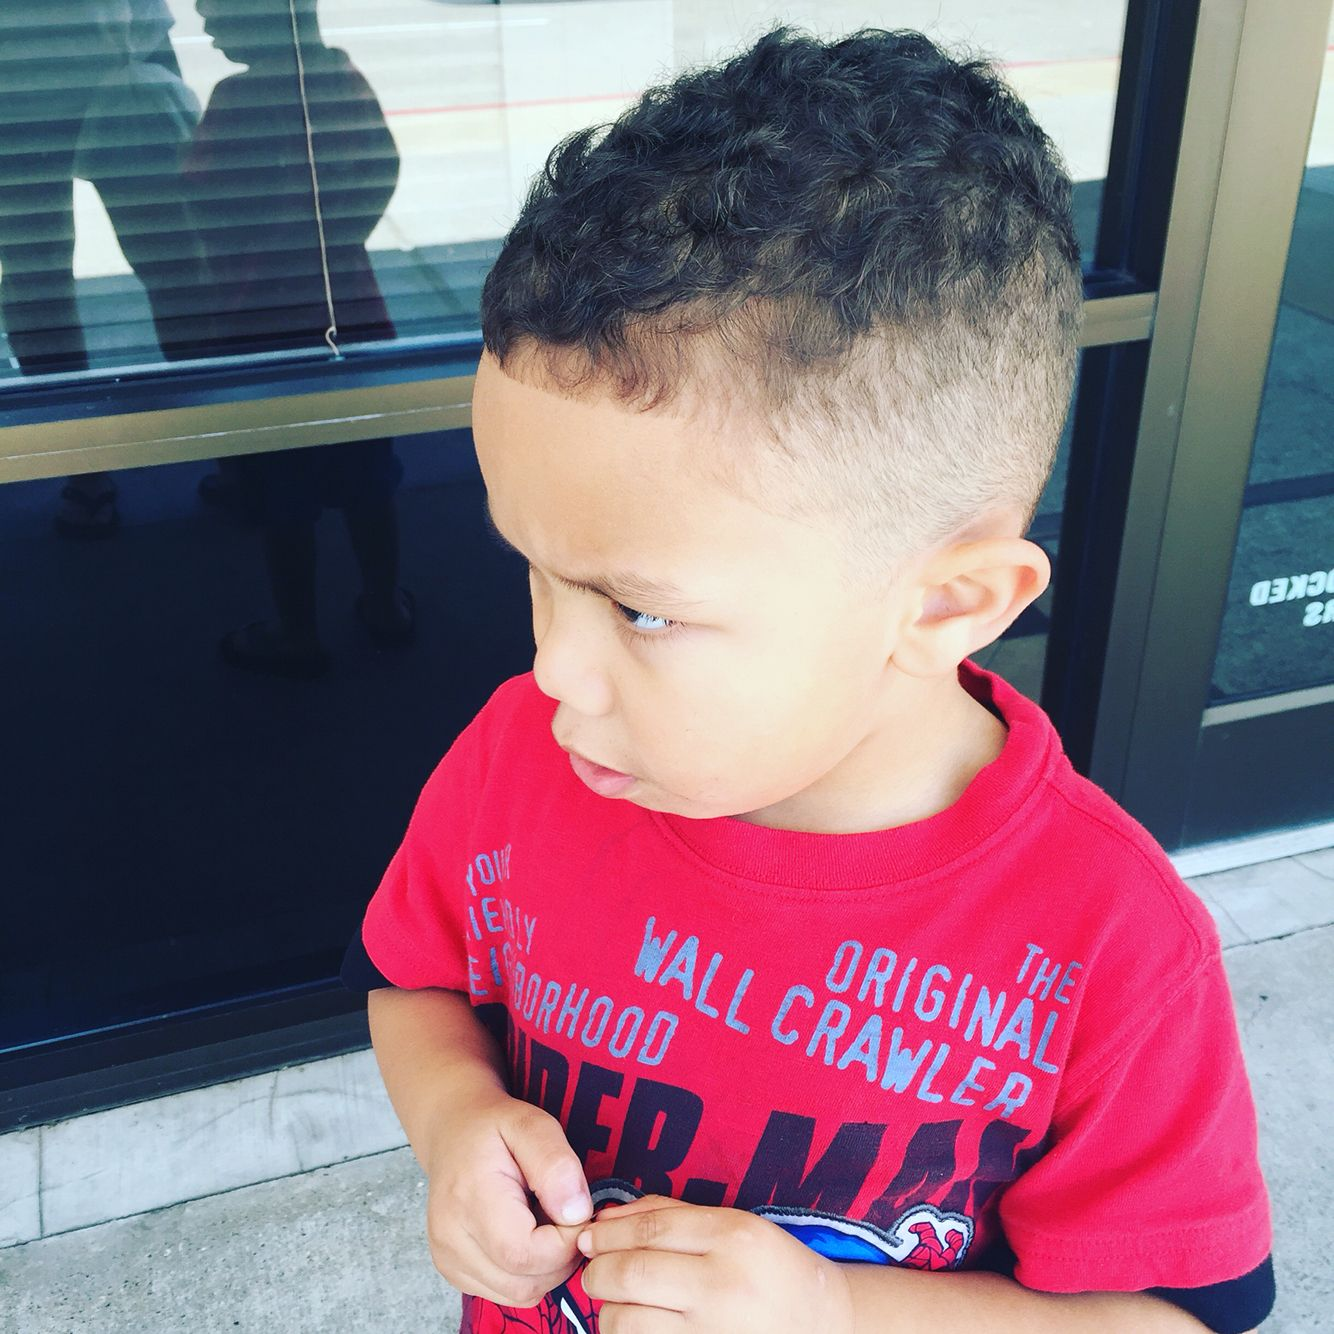 Mixed Race Hair Styles Male: My 4 Year Old Boys New Hair Cute. Fade And Edge. Mixed Boy